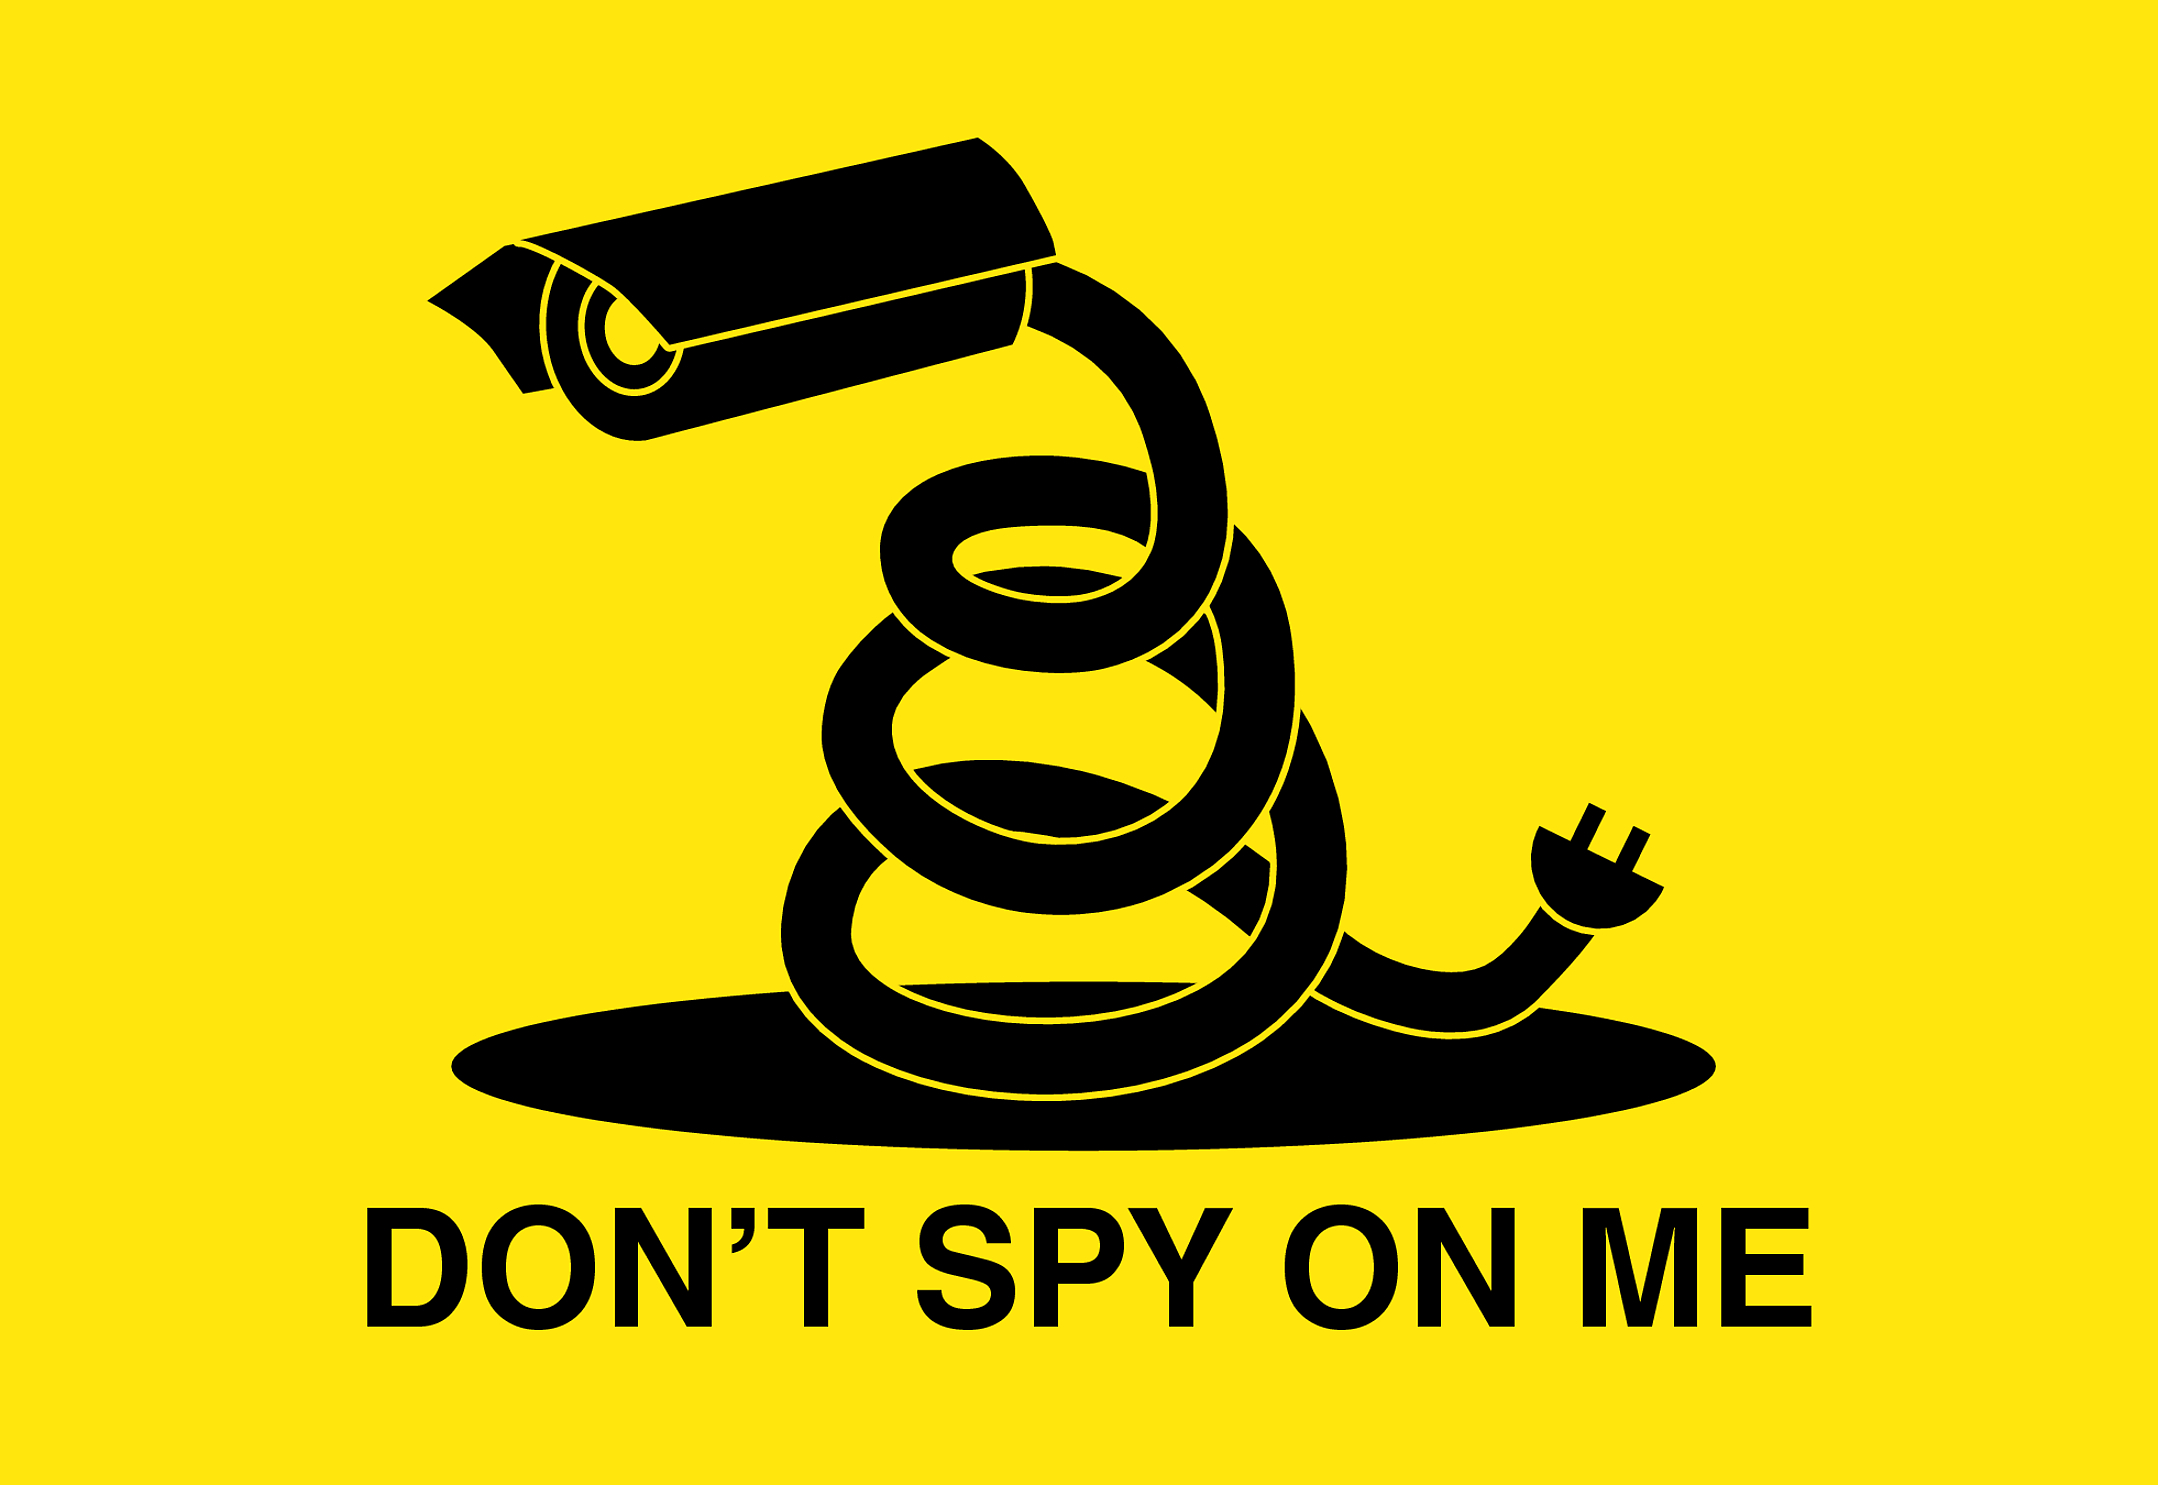 dont spy on me